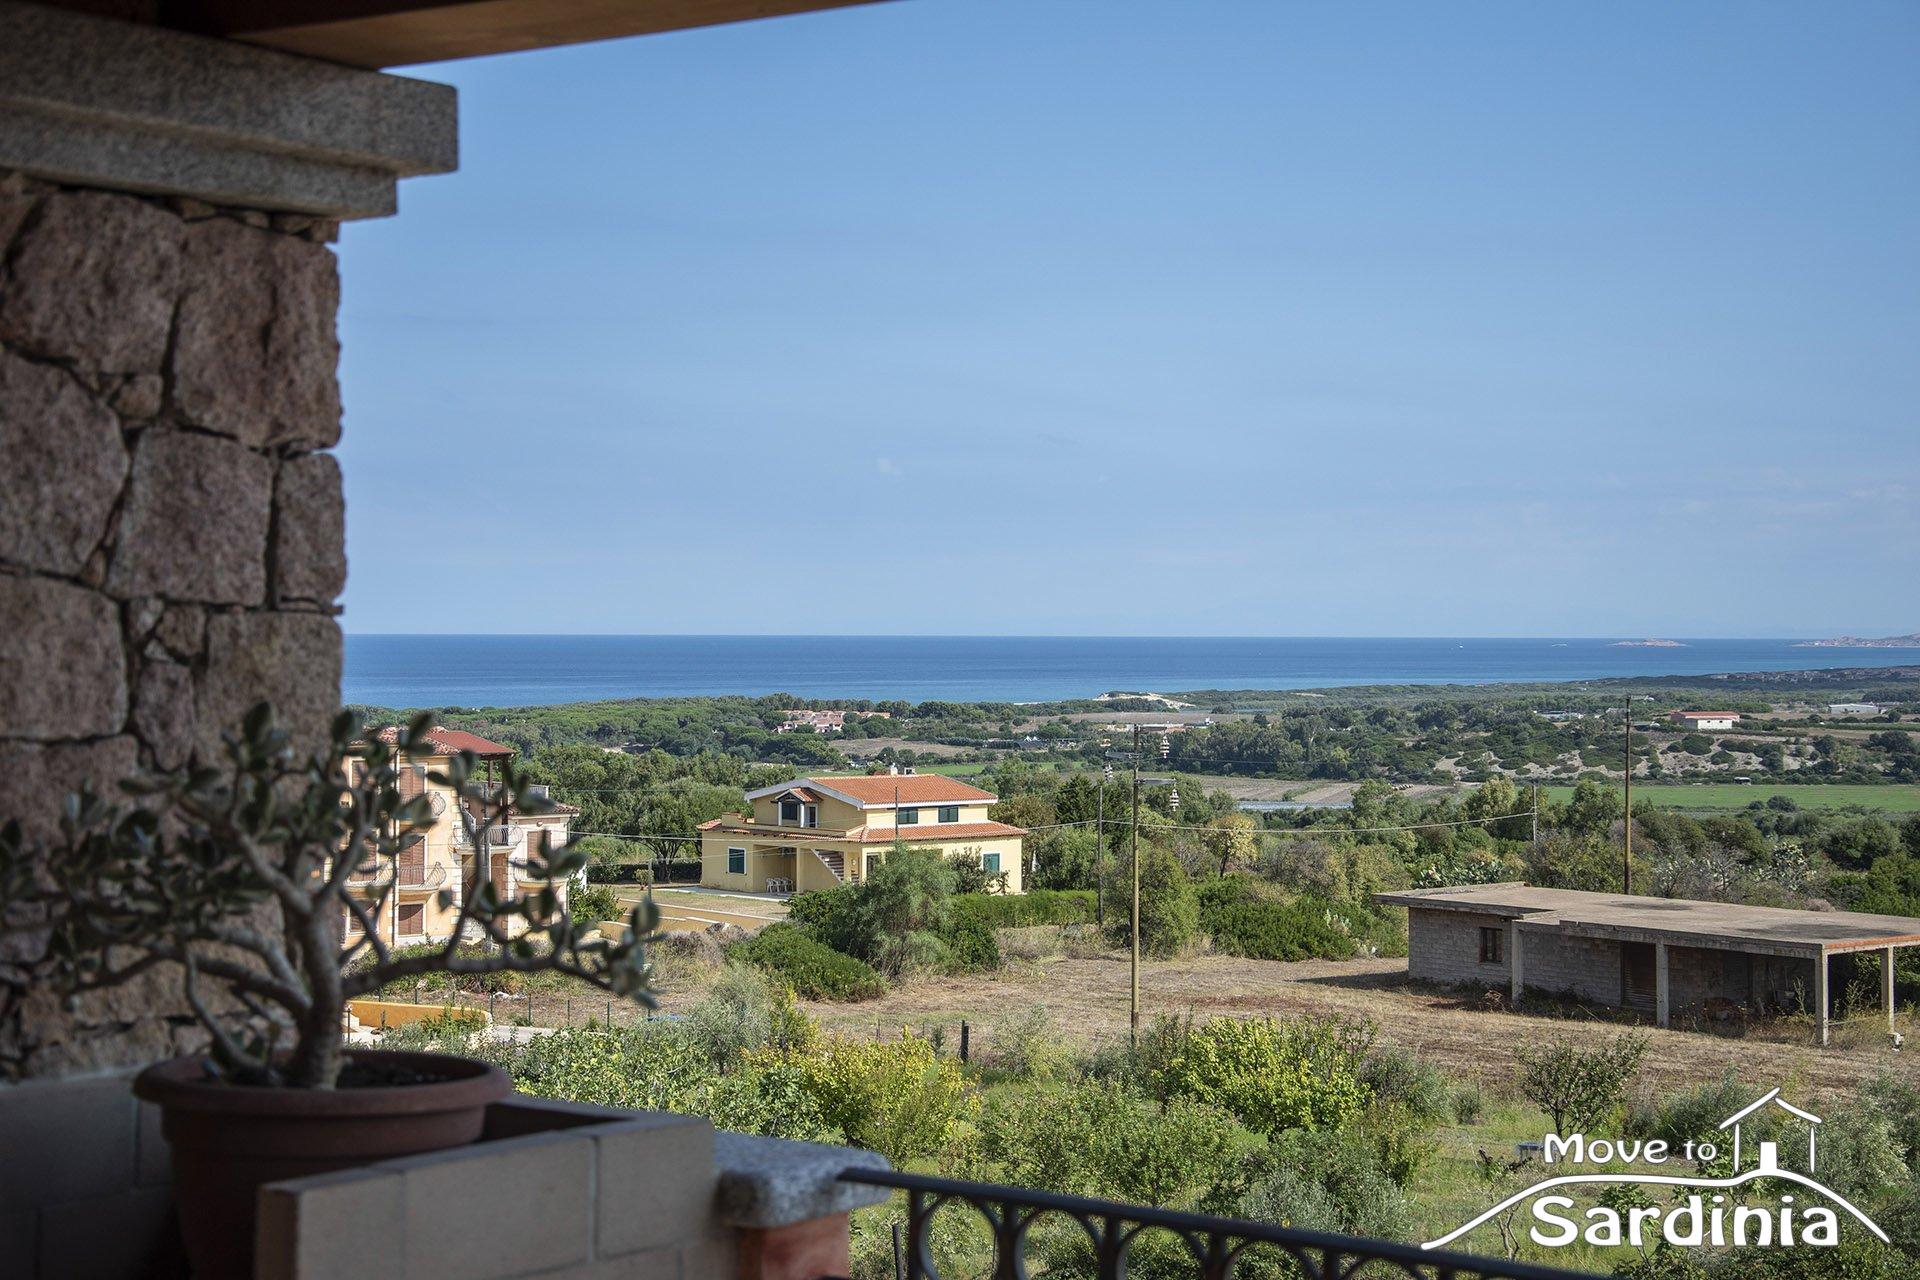 45 sqm apartment for sale in Sardinia Valledoria north side